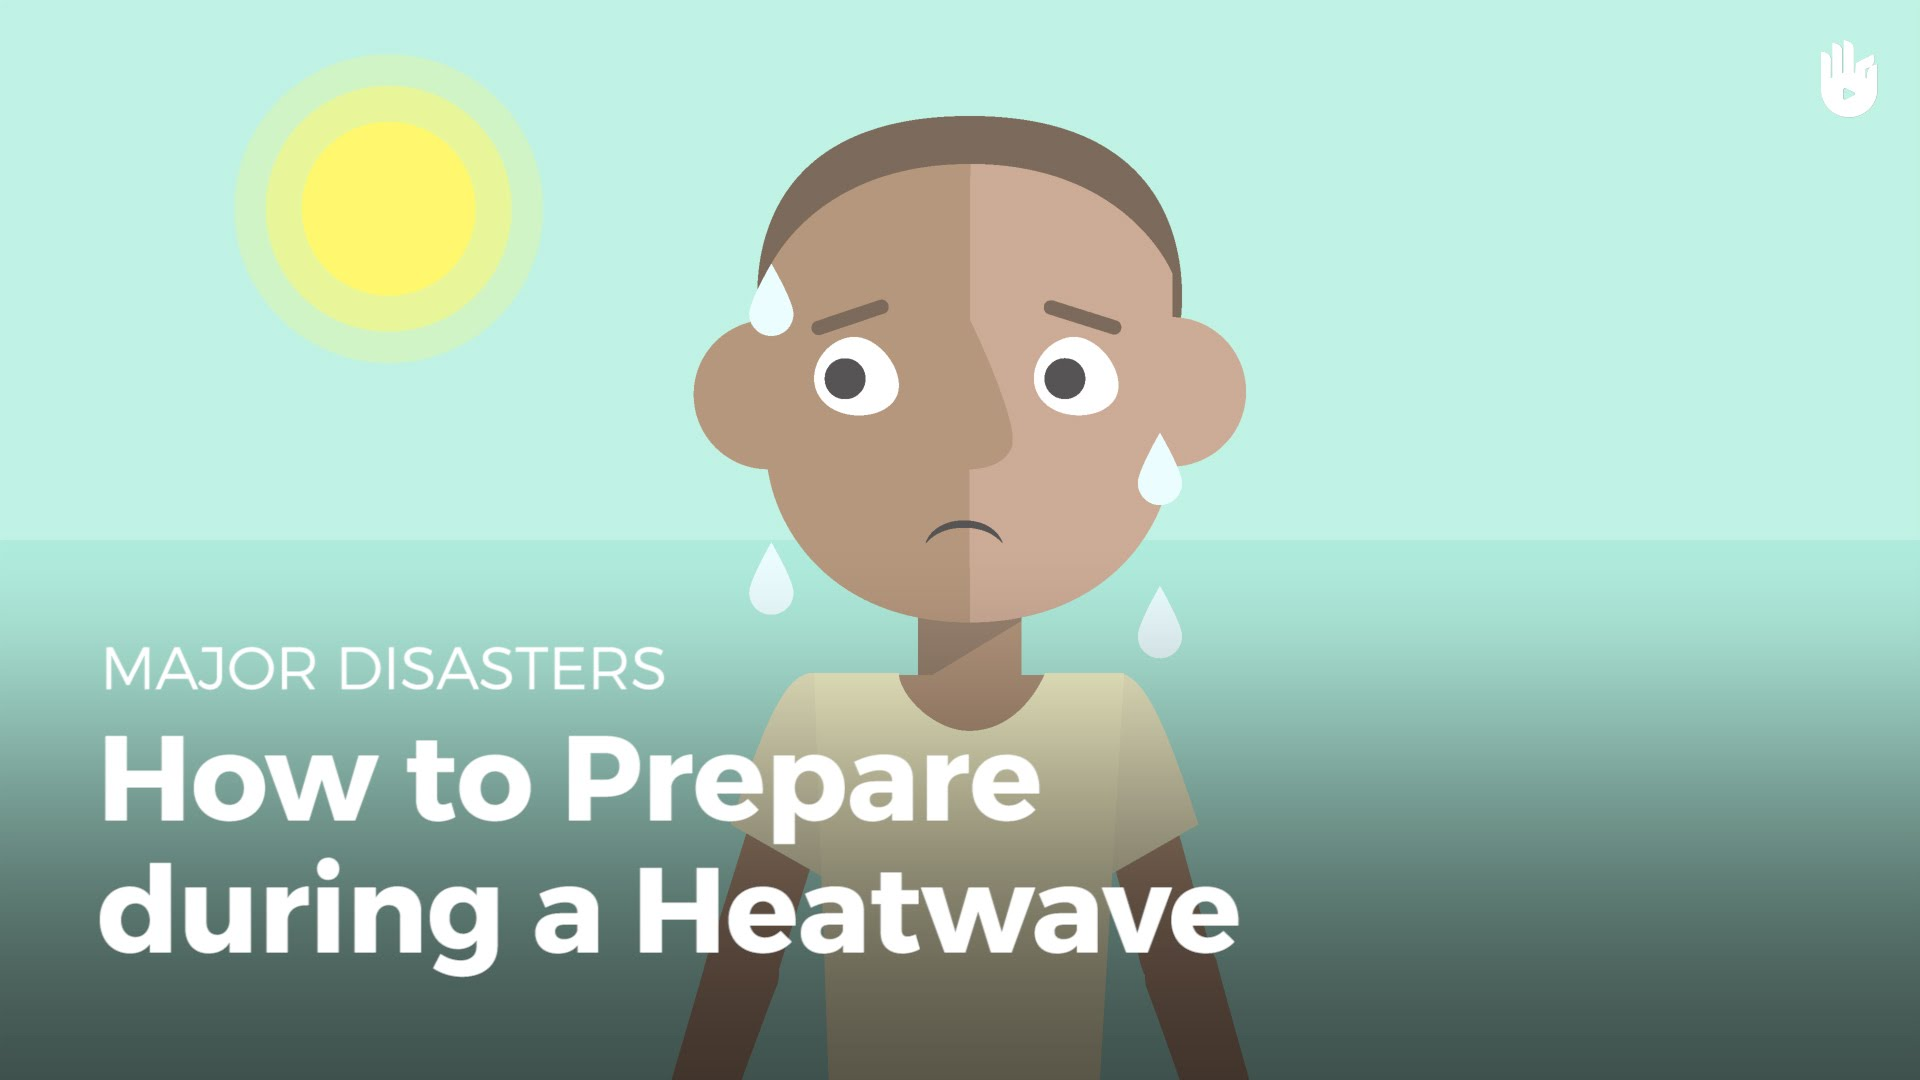 「太陽火辣辣,預防中暑 123」- How to Prepare for a Heatwave